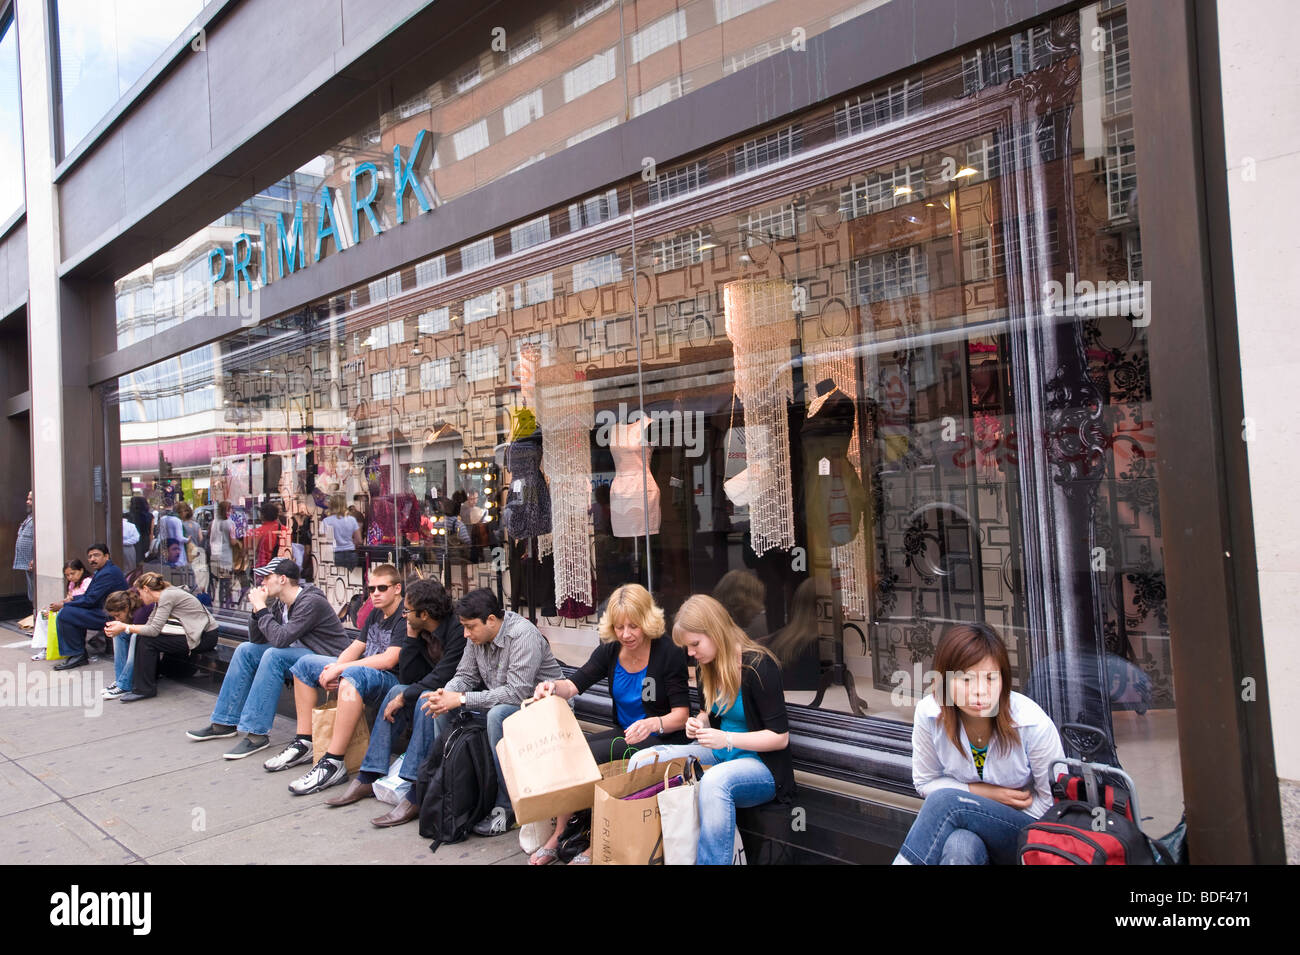 Primark department store, Oxford Street, London, United Kingdom - Stock Image